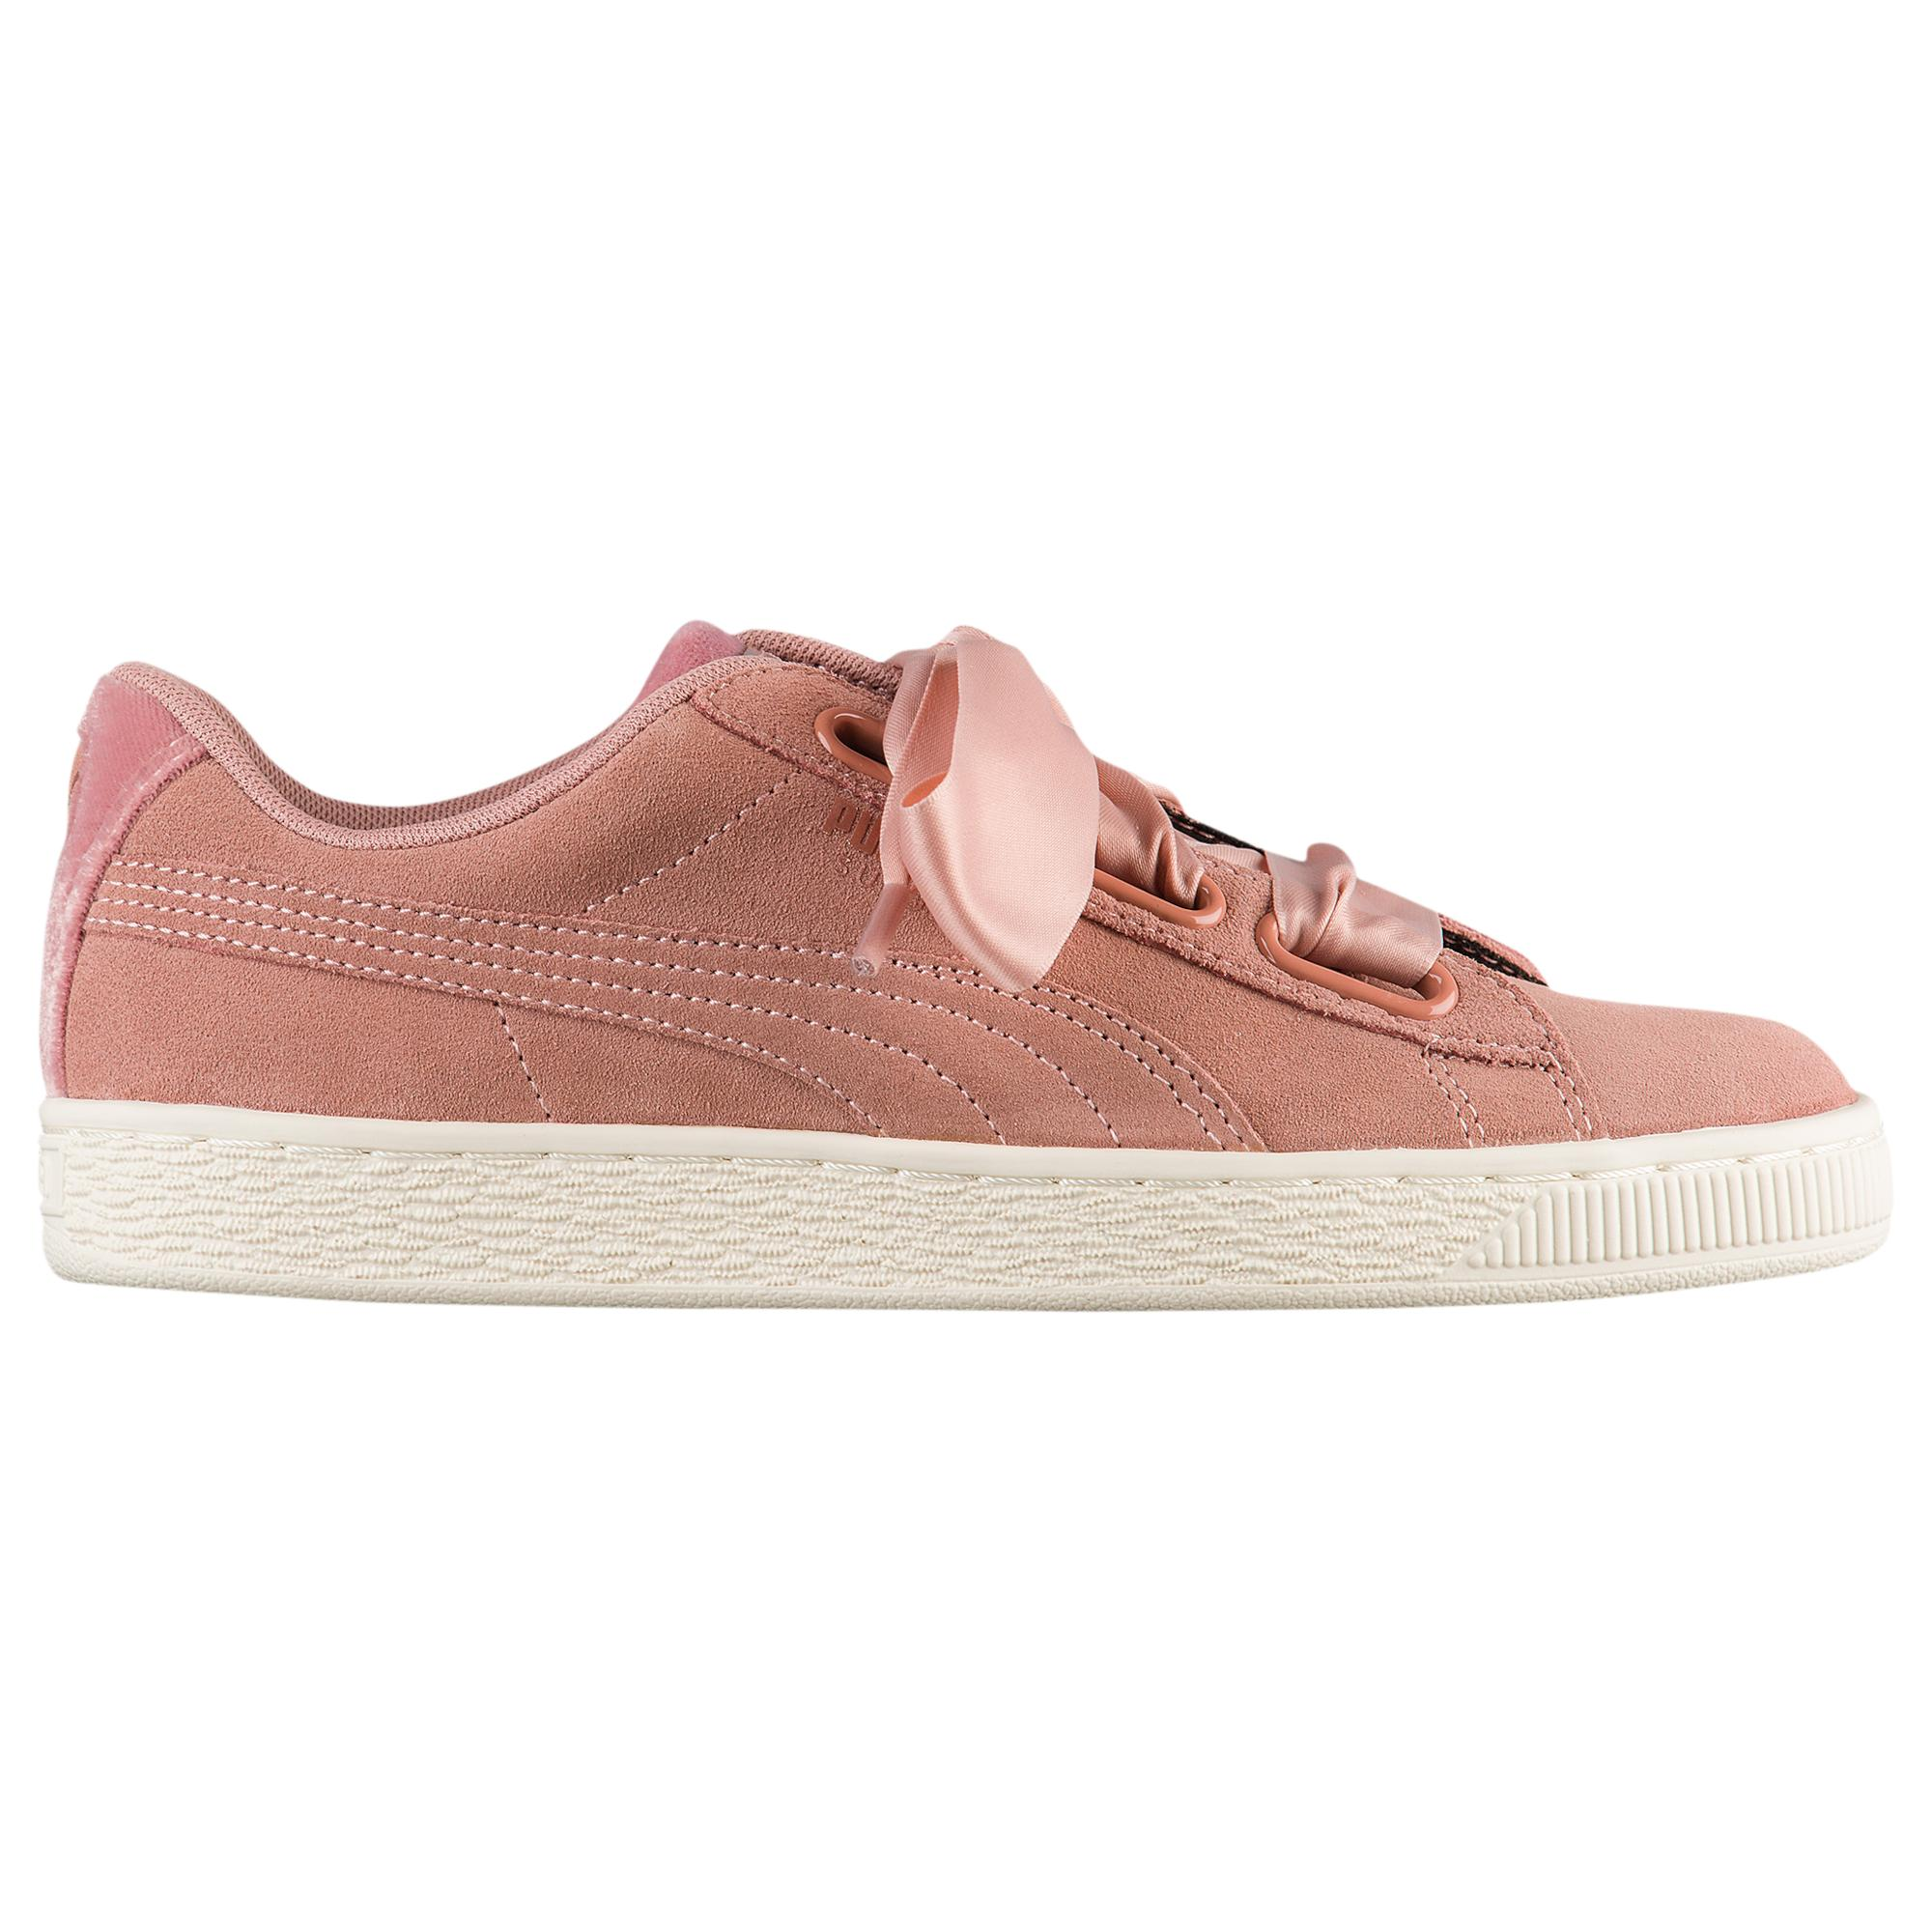 sports shoes 3832a b83f1 PUMA - Pink Suede Heart Basketball Shoes - Lyst